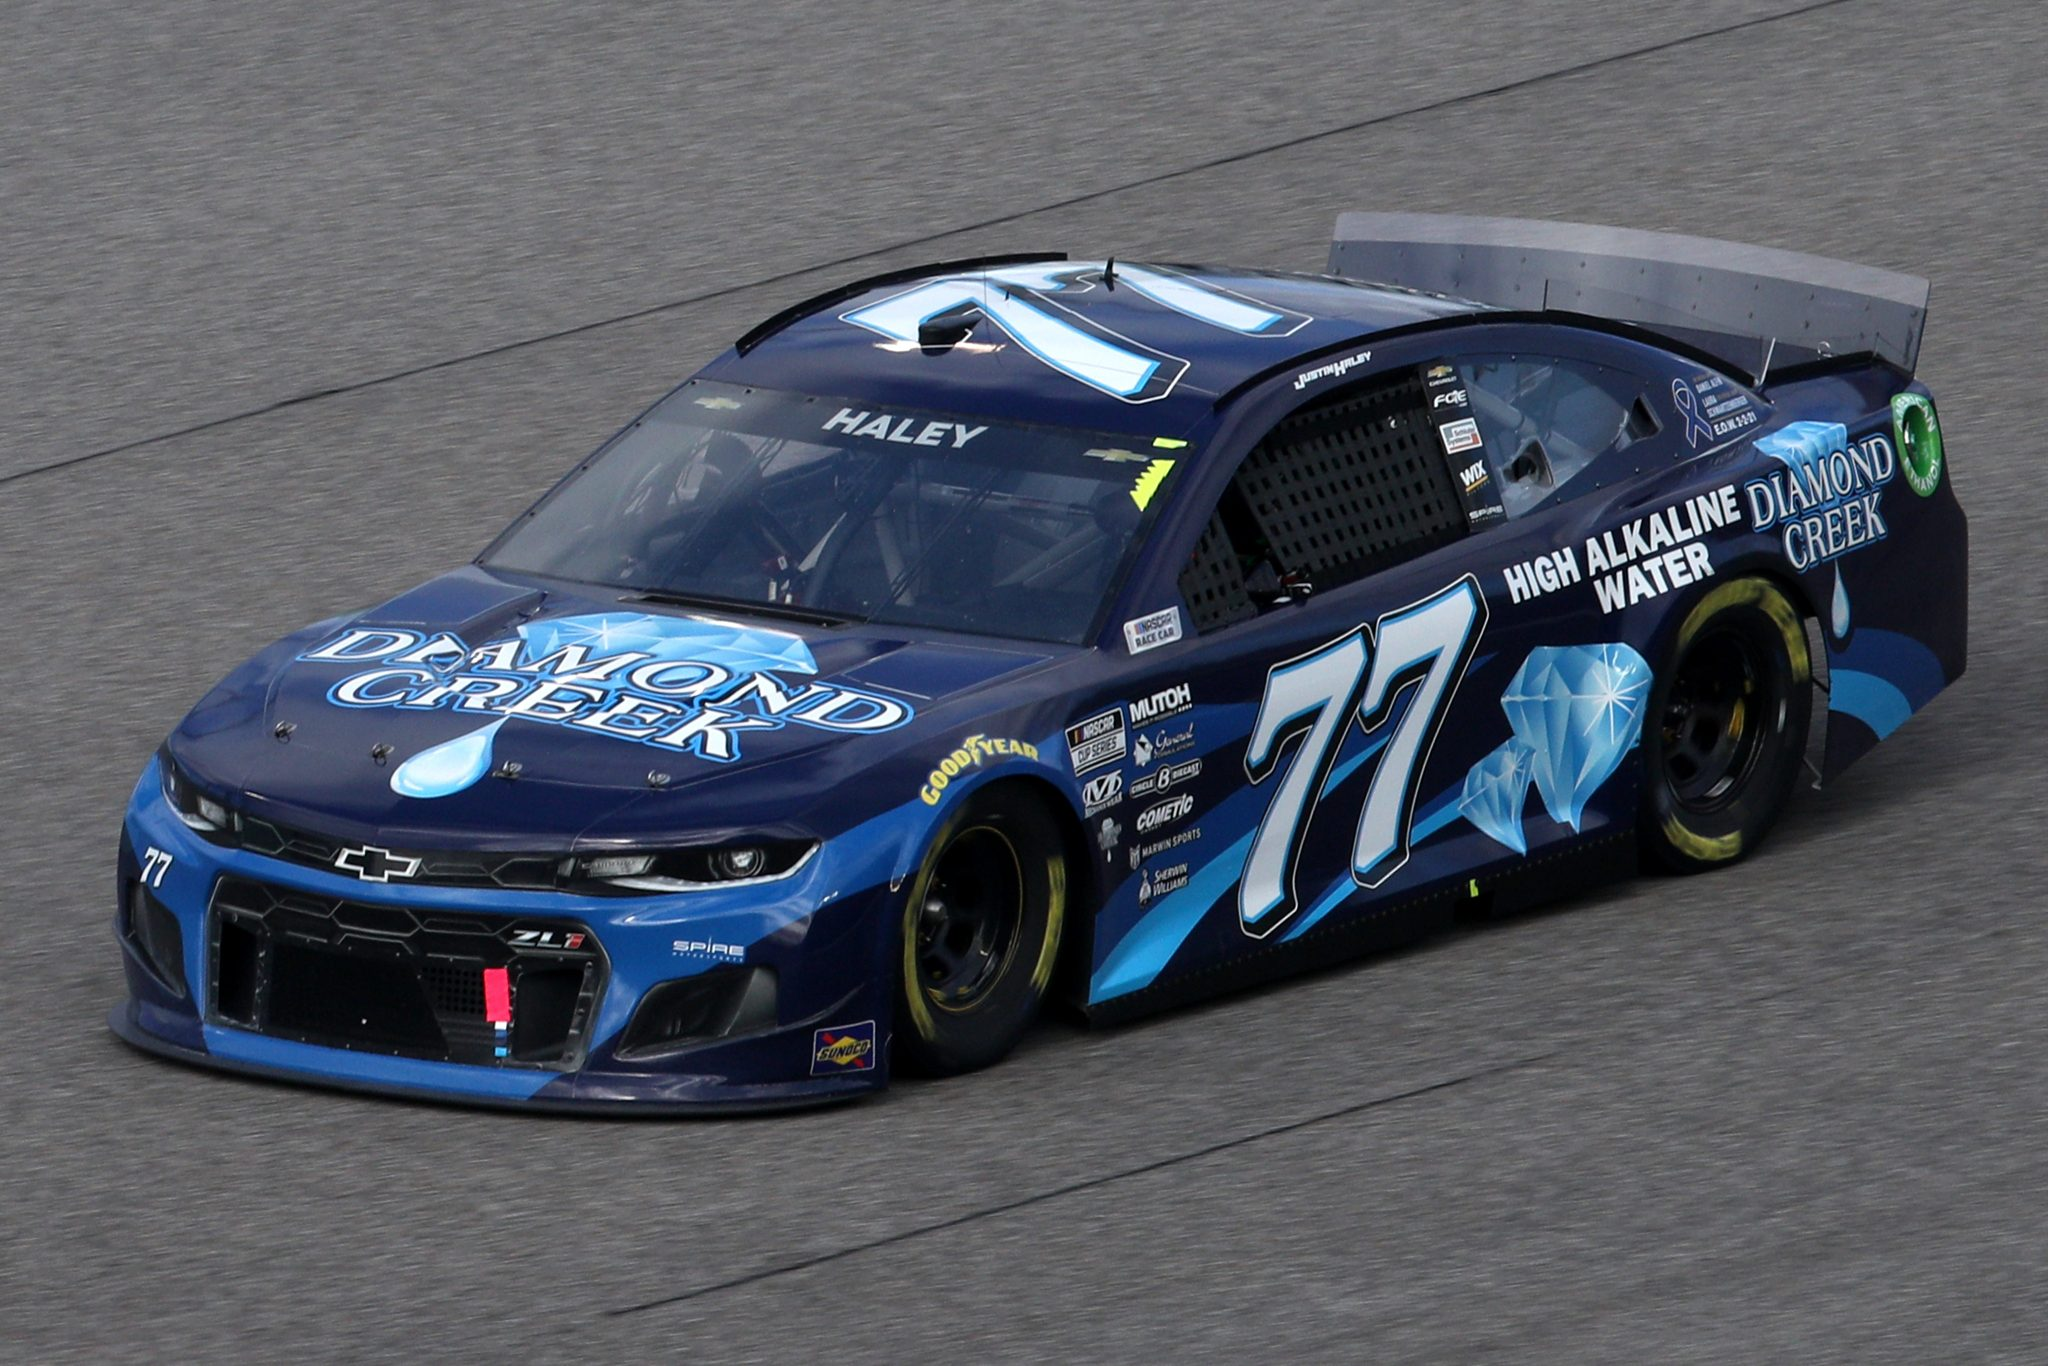 HOMESTEAD, FLORIDA - FEBRUARY 28: Justin Haley, driver of the #77 Diamond Creek Water Chevrolet, drives during the NASCAR Cup Series Dixie Vodka 400 at Homestead-Miami Speedway on February 28, 2021 in Homestead, Florida. (Photo by Sean Gardner/Getty Images) | Getty Images